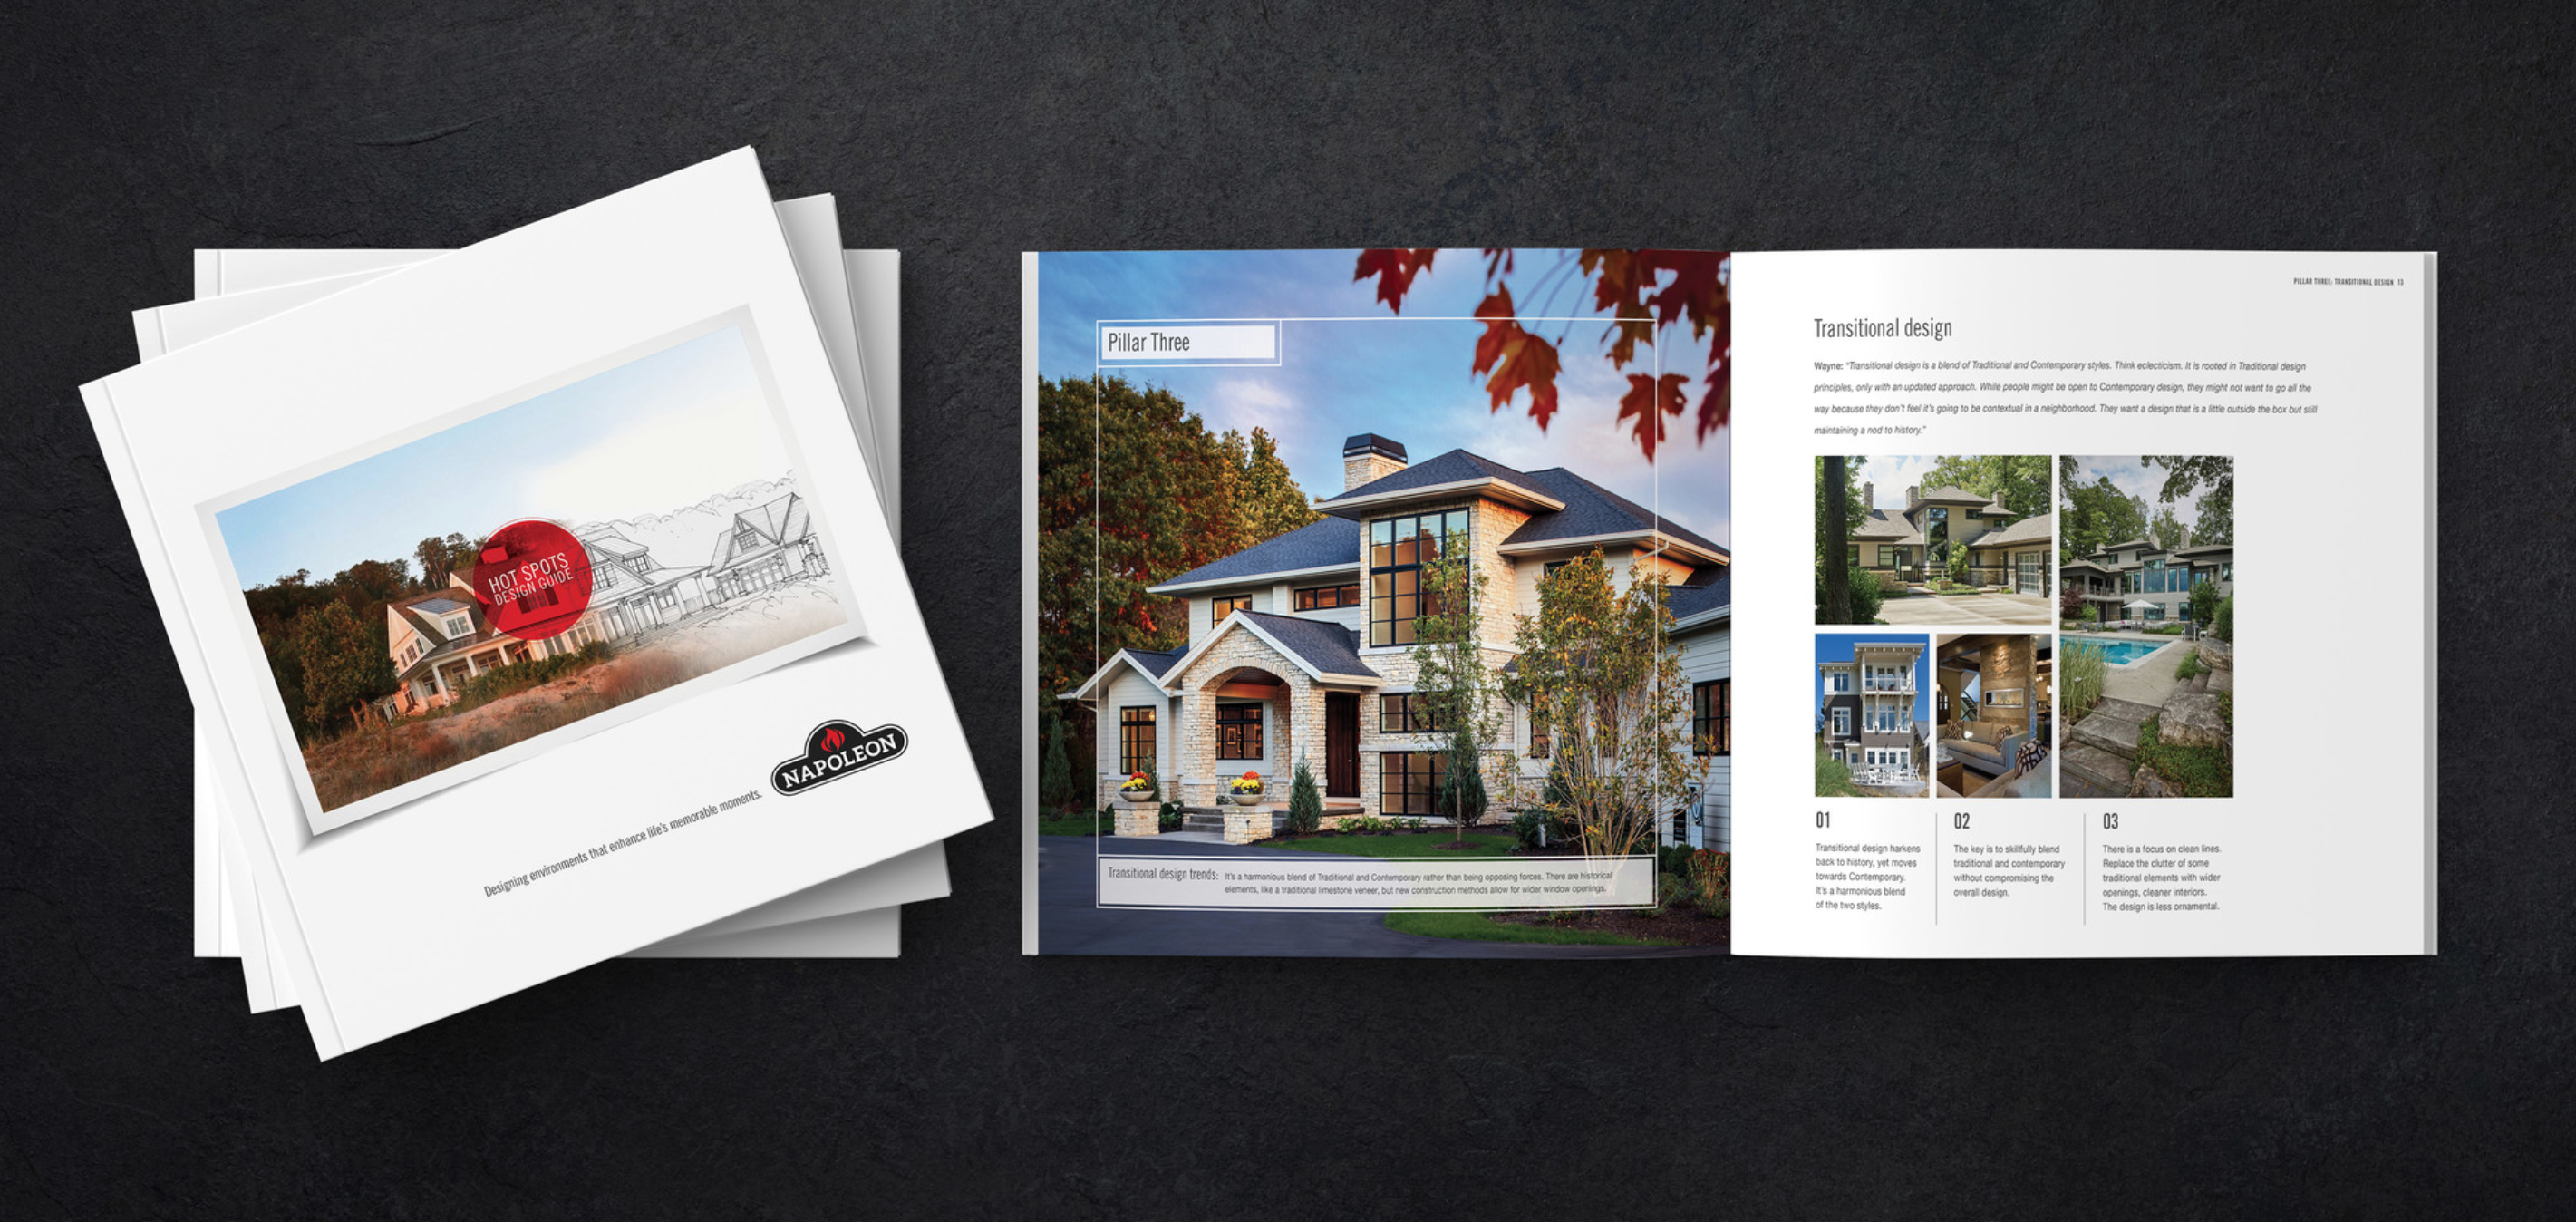 Napoleon fireplaces Hot Spots campaign design guide designed by Wayne Visbeen and Hoffman York.